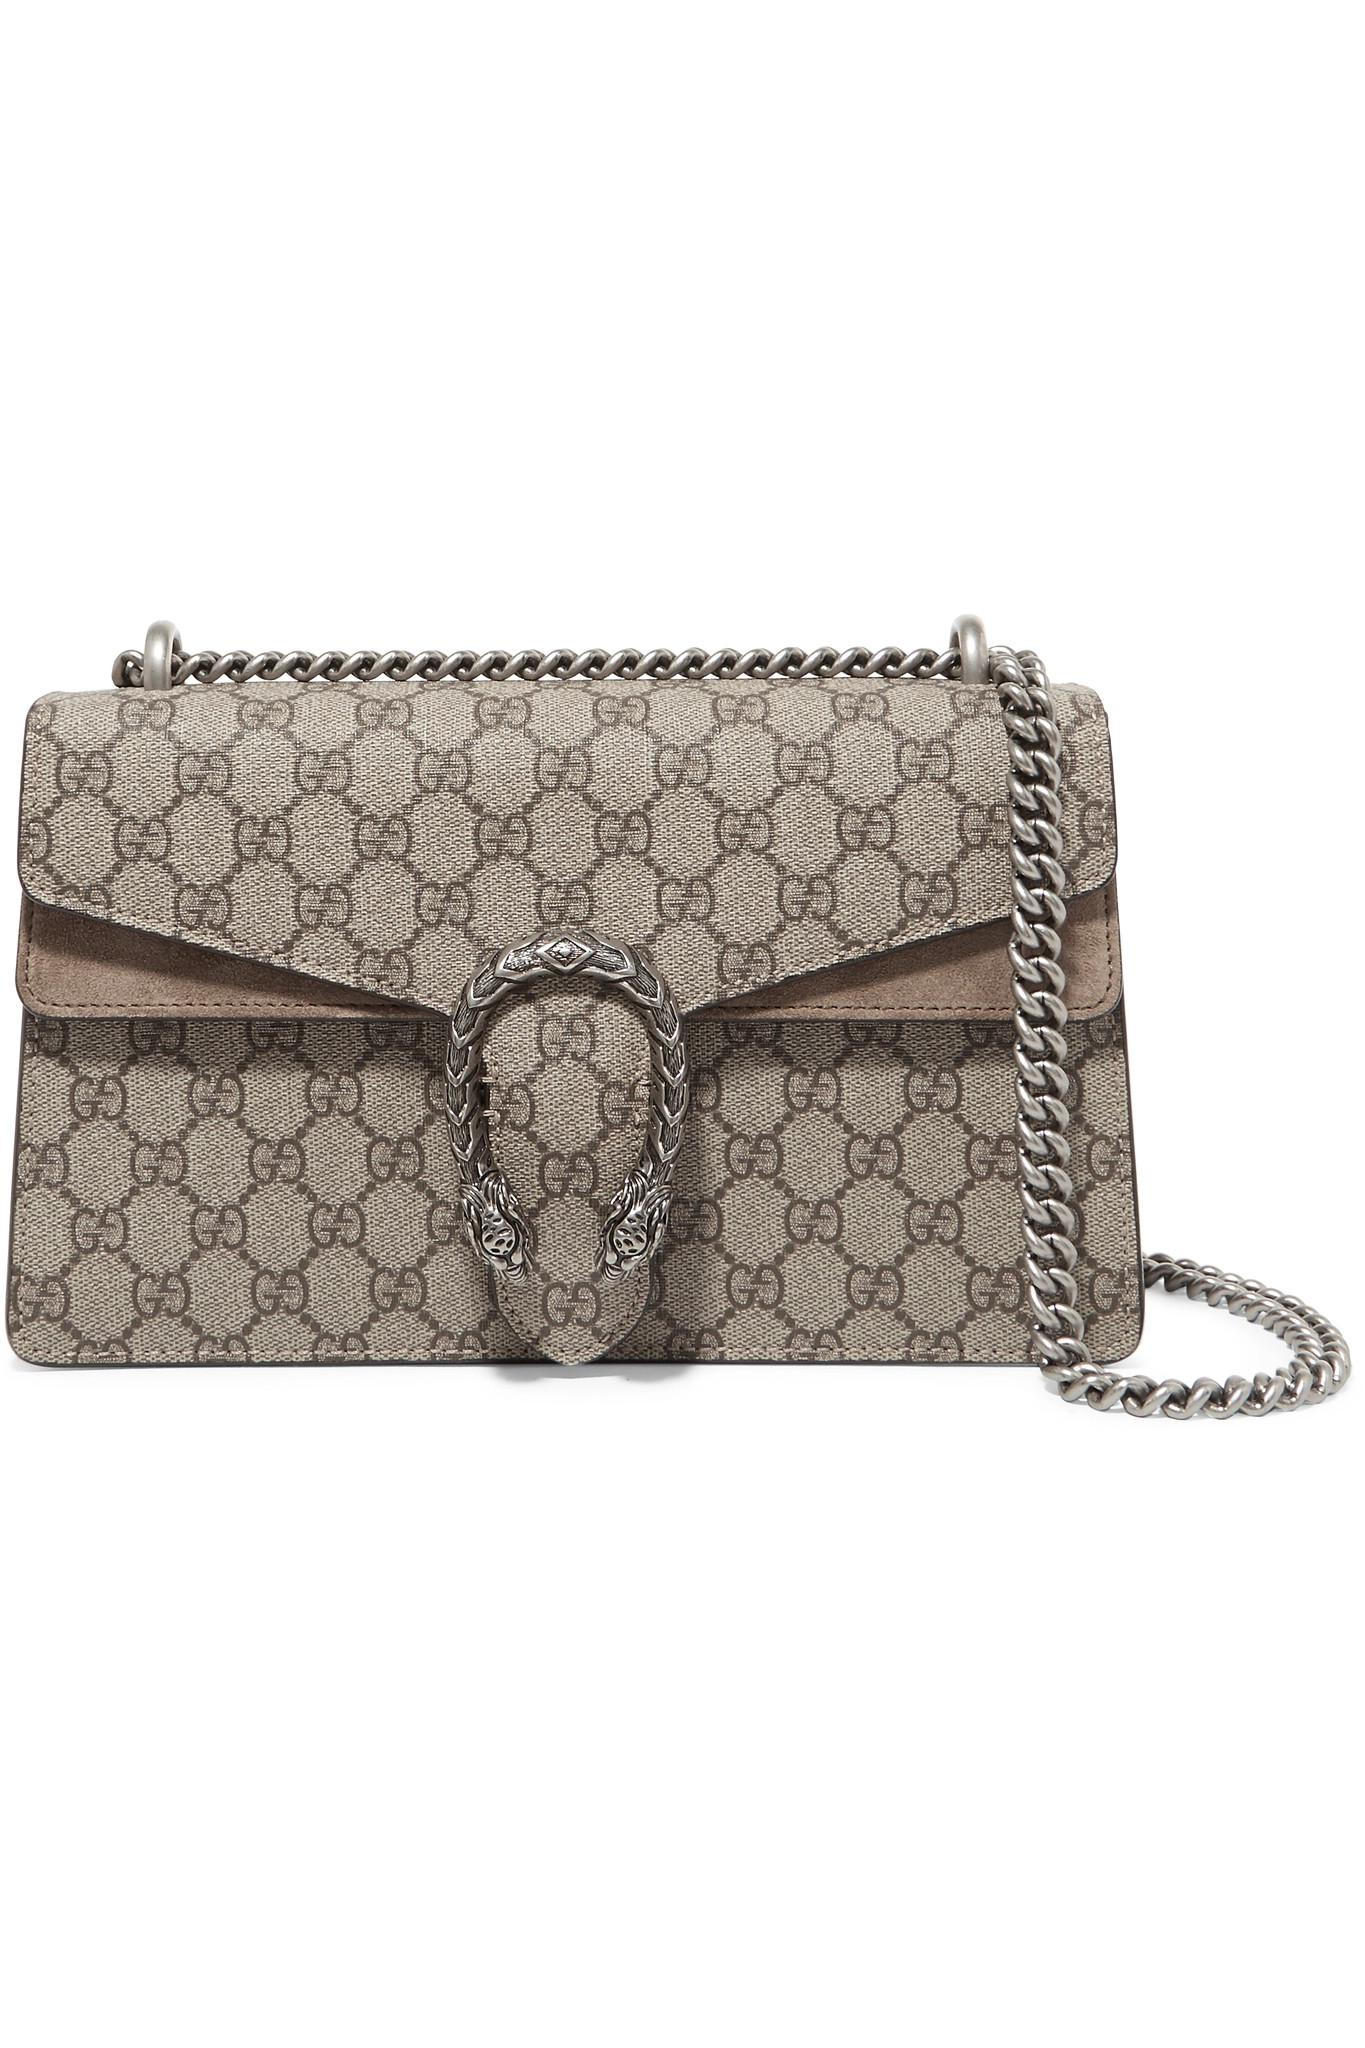 68bec6445d3 Gucci. Women s Natural Dionysus Small Printed Coated-canvas And Suede  Shoulder Bag